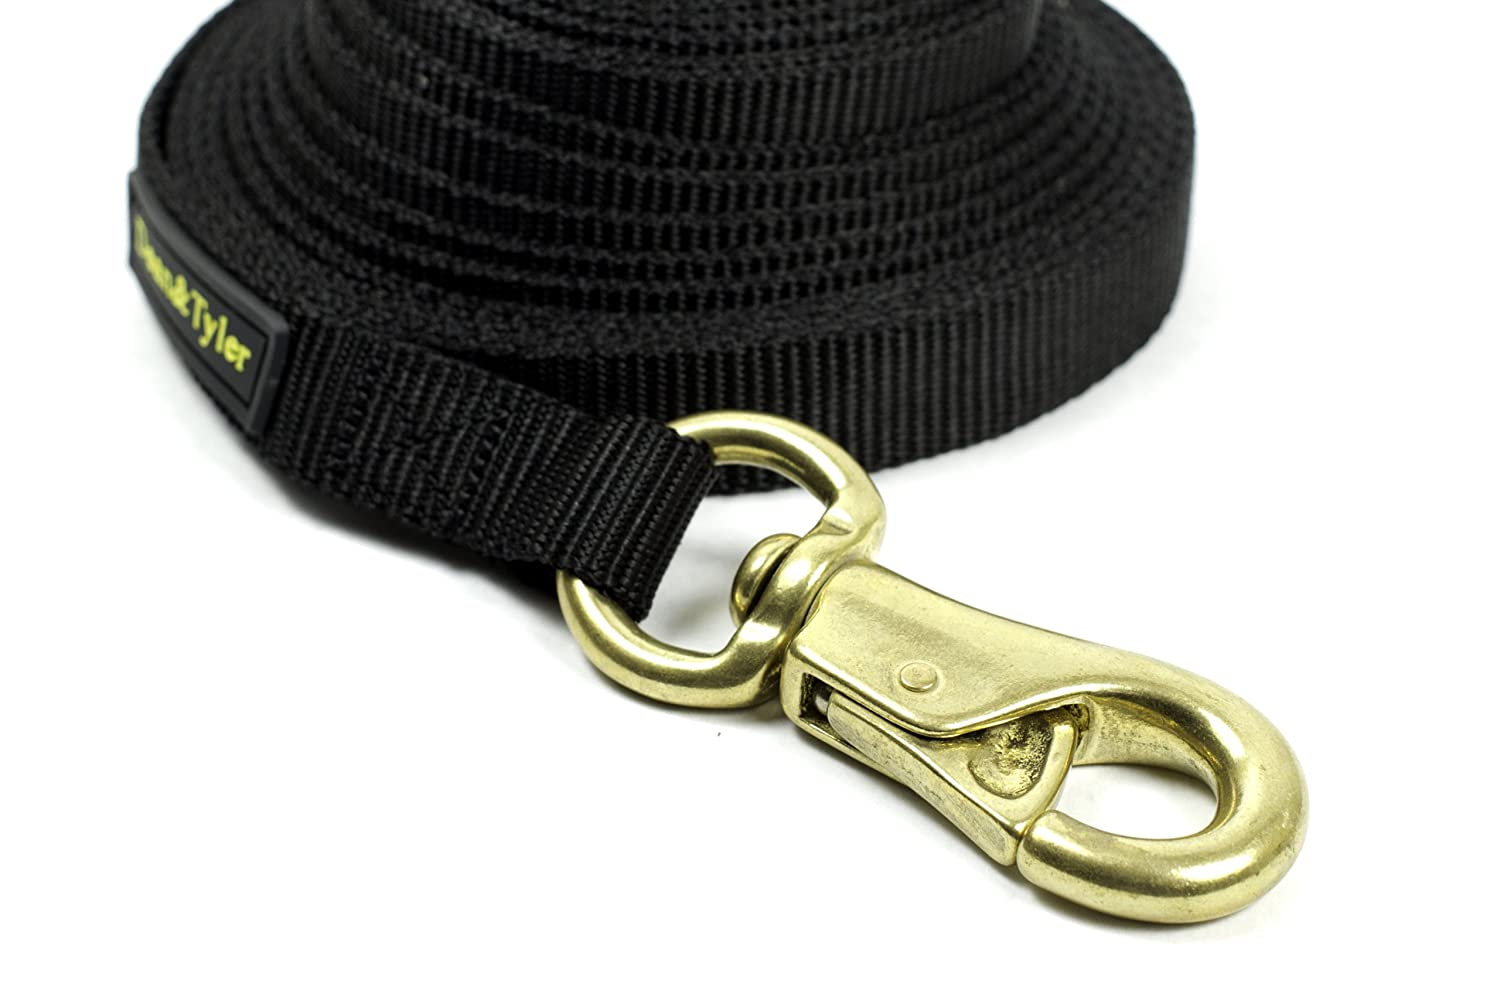 Dean & Tyler Double Ply Nylon Dog Leash with Massive Brass Snap, 25-Feet by 3 4-Inch, Black